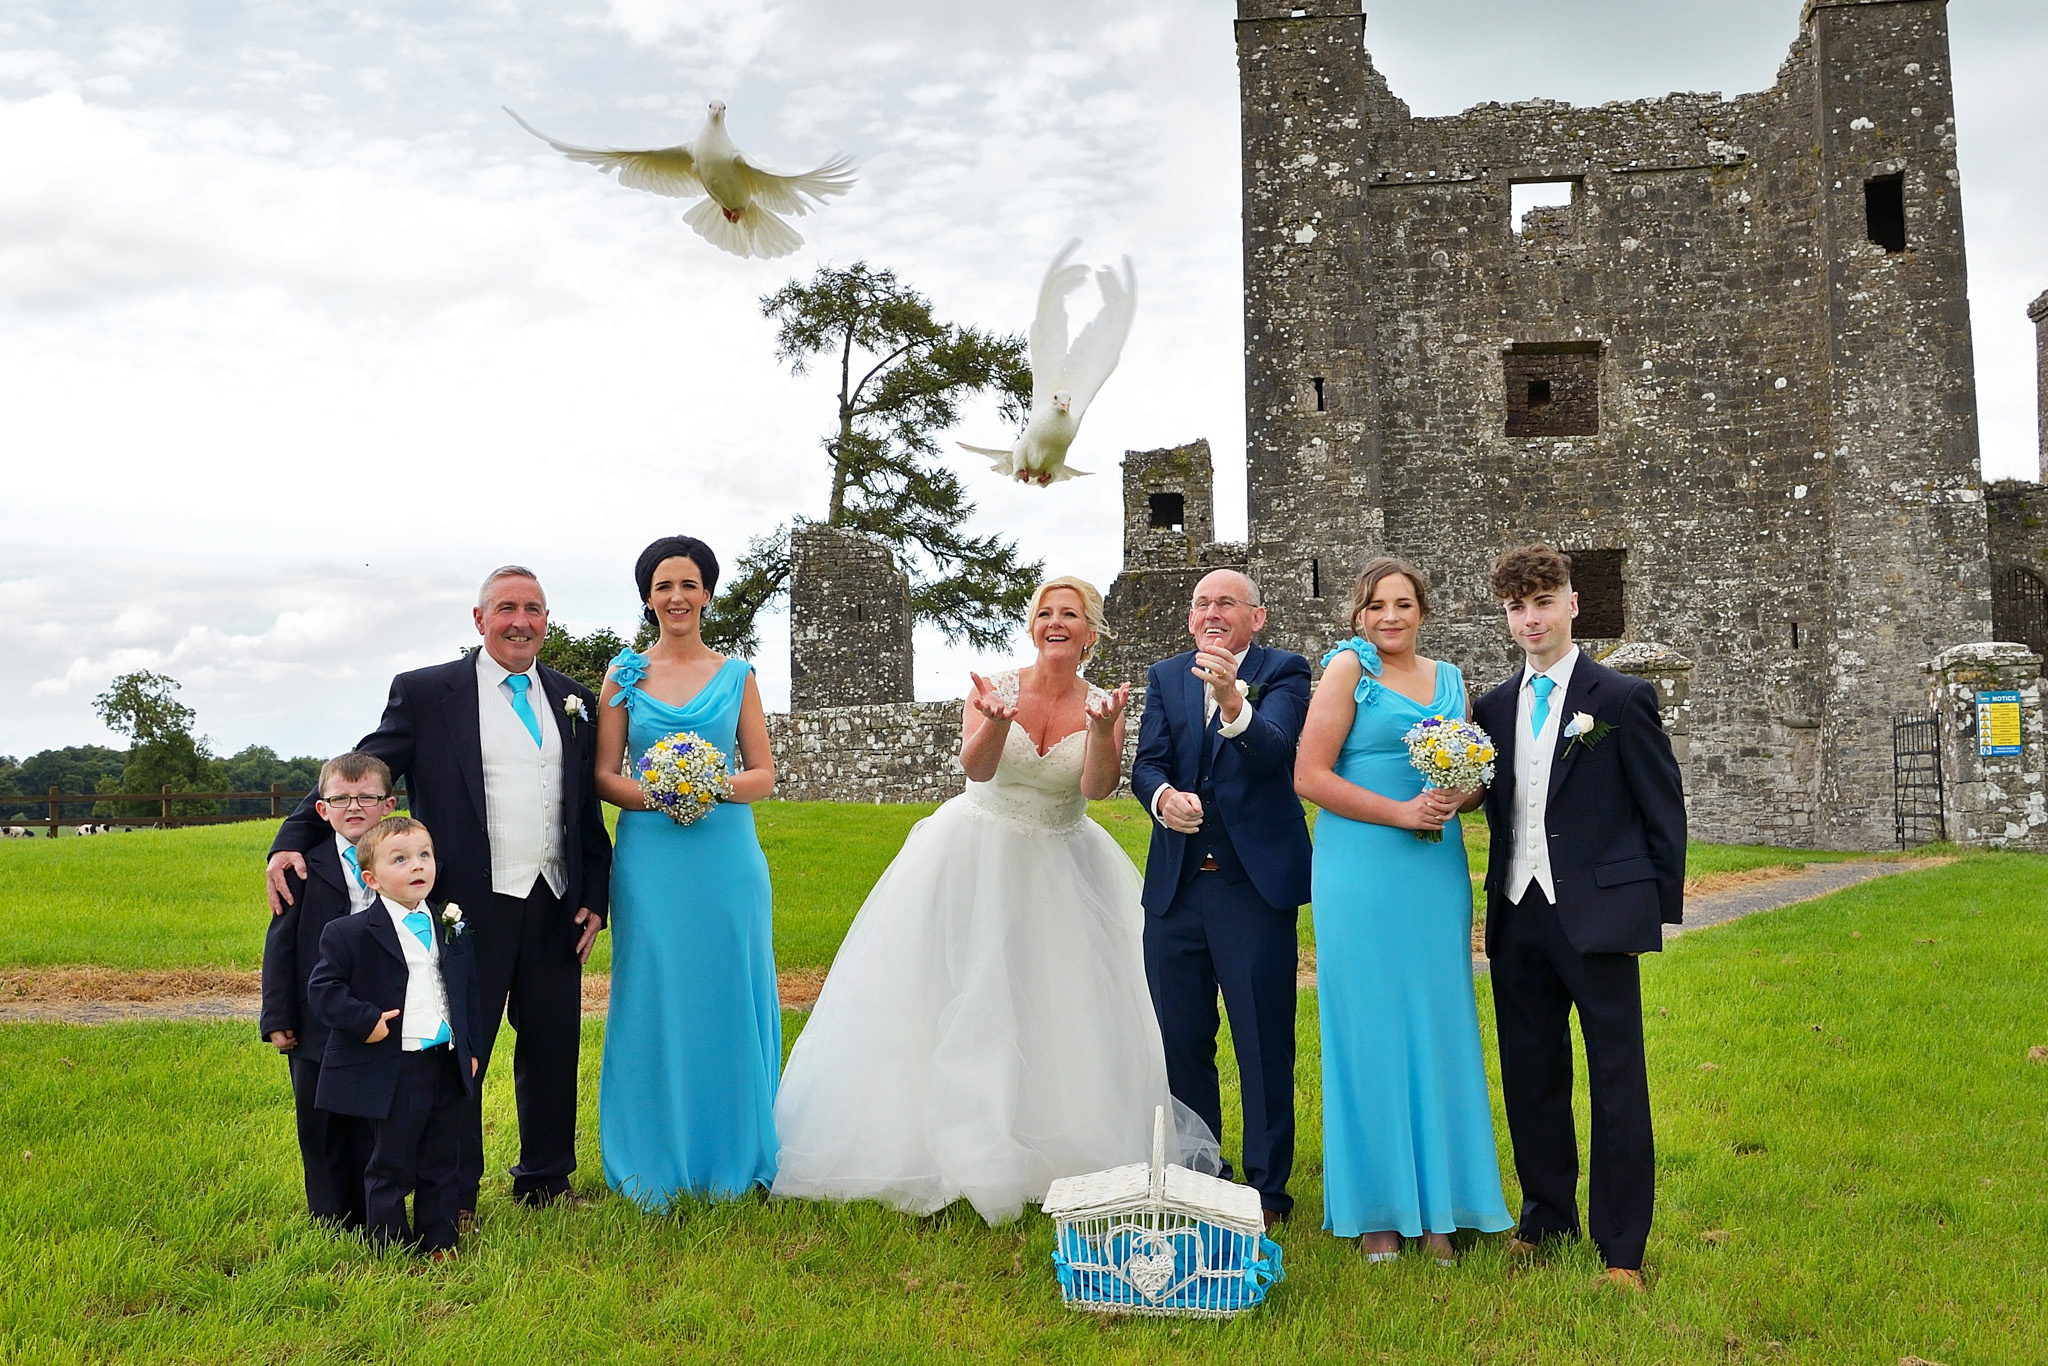 Wedding photographer Trim Ireland